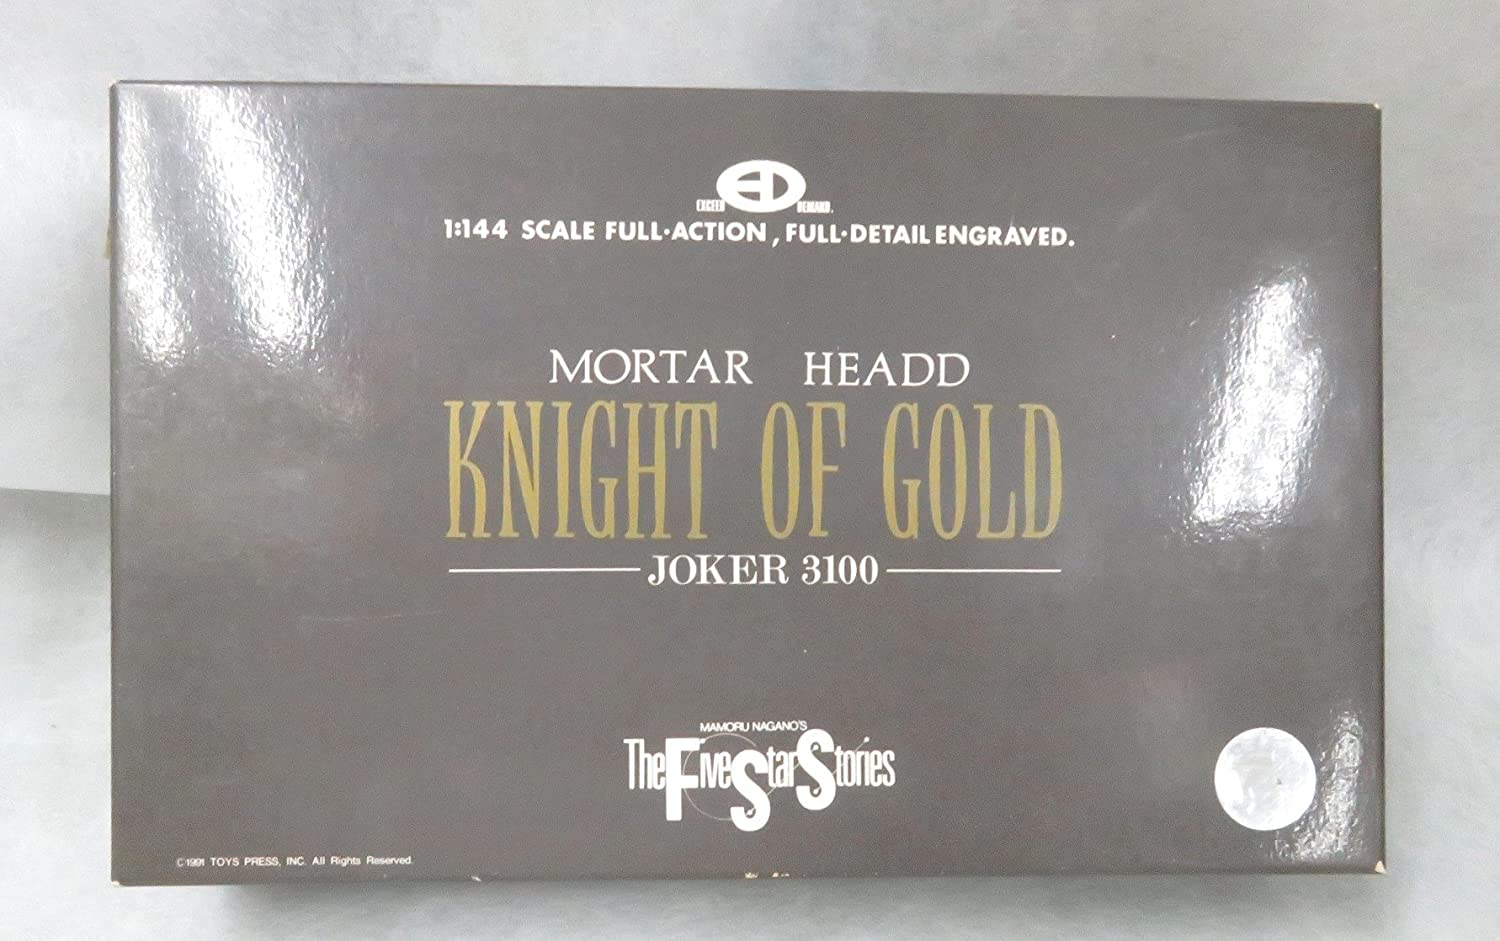 The Five Star Stories MORTAR HEADD KNIGHT OF GOKD JOKER 3100 1:144 SCALE FULL-ACTION,FULL-DETAIL ENGRAVED   B07CSKX1S8